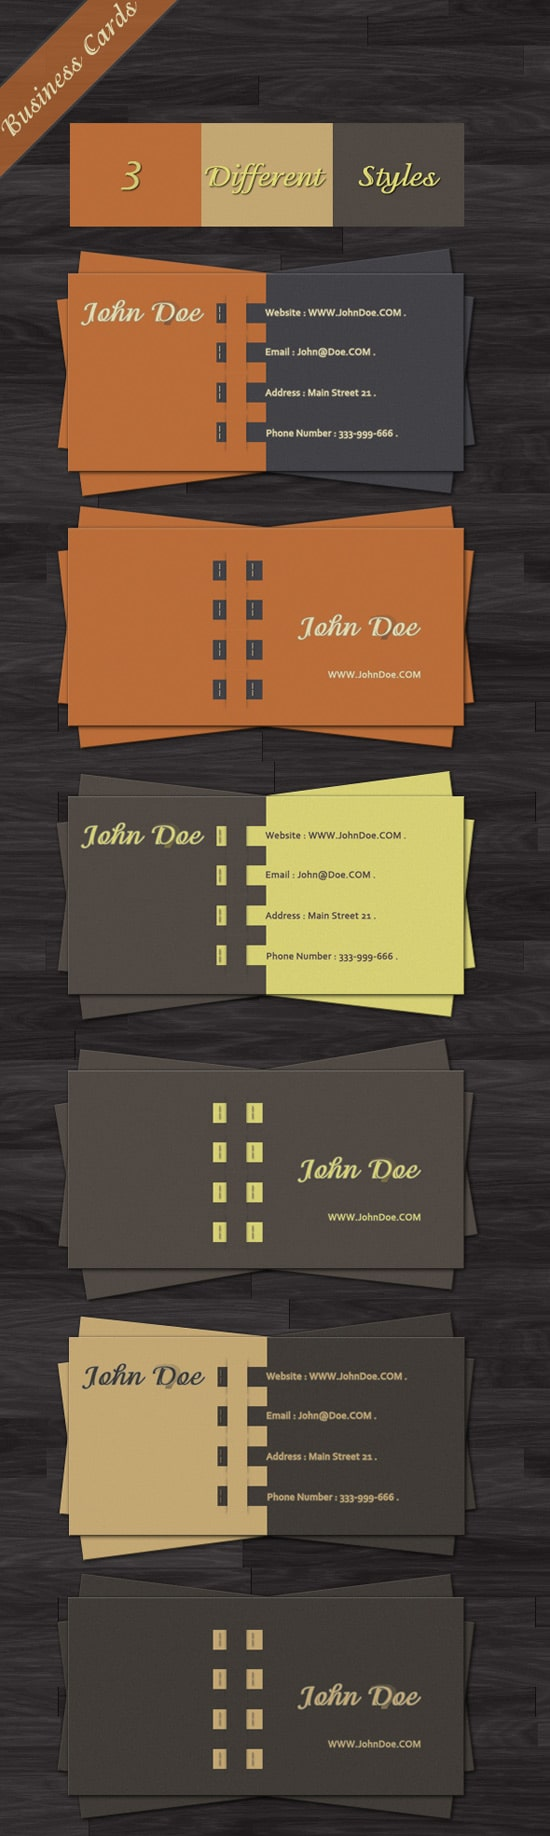 Free Business Card Templates Designrfixcom - Free business card templates